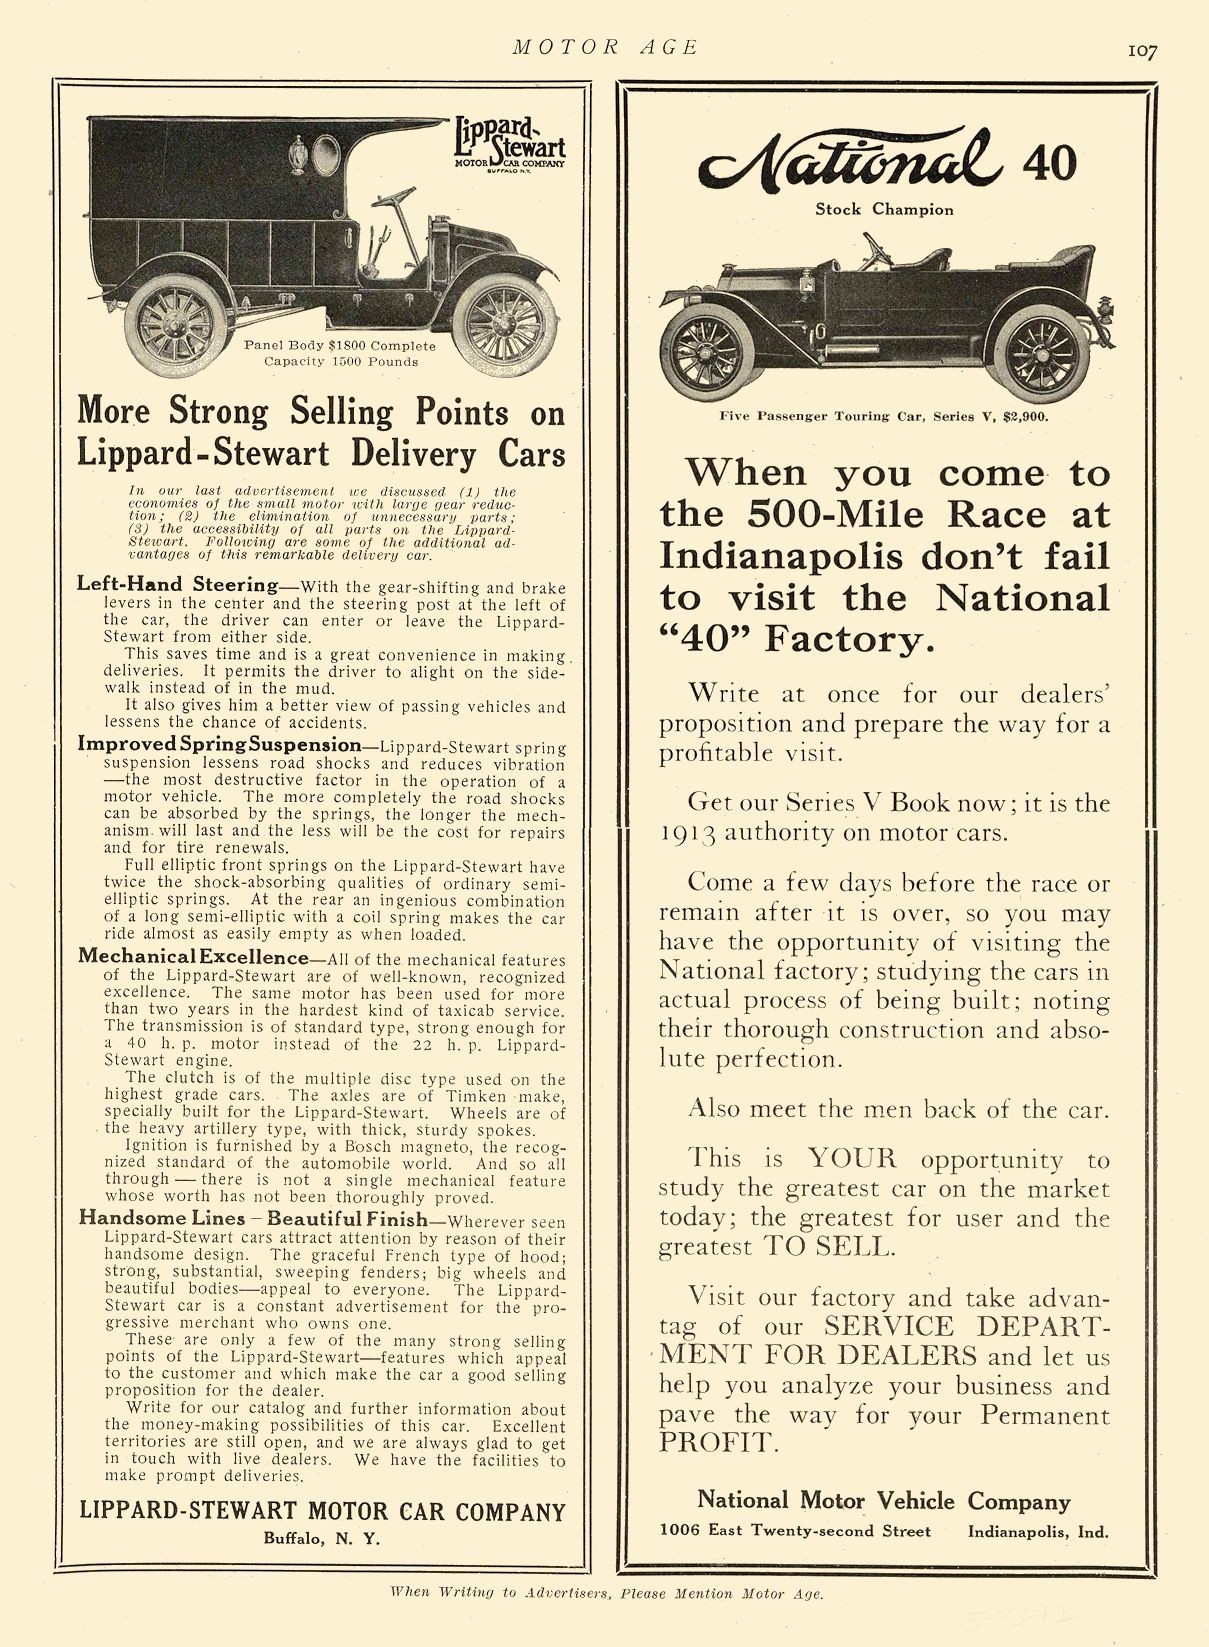 """1912 5 23 NATIONAL National 40 visit the National """"40"""" Factory National Motor Vehicle Company Indianapolis, IND MOTOR AGE May 23, 1912 8.5″x12″ page 107"""